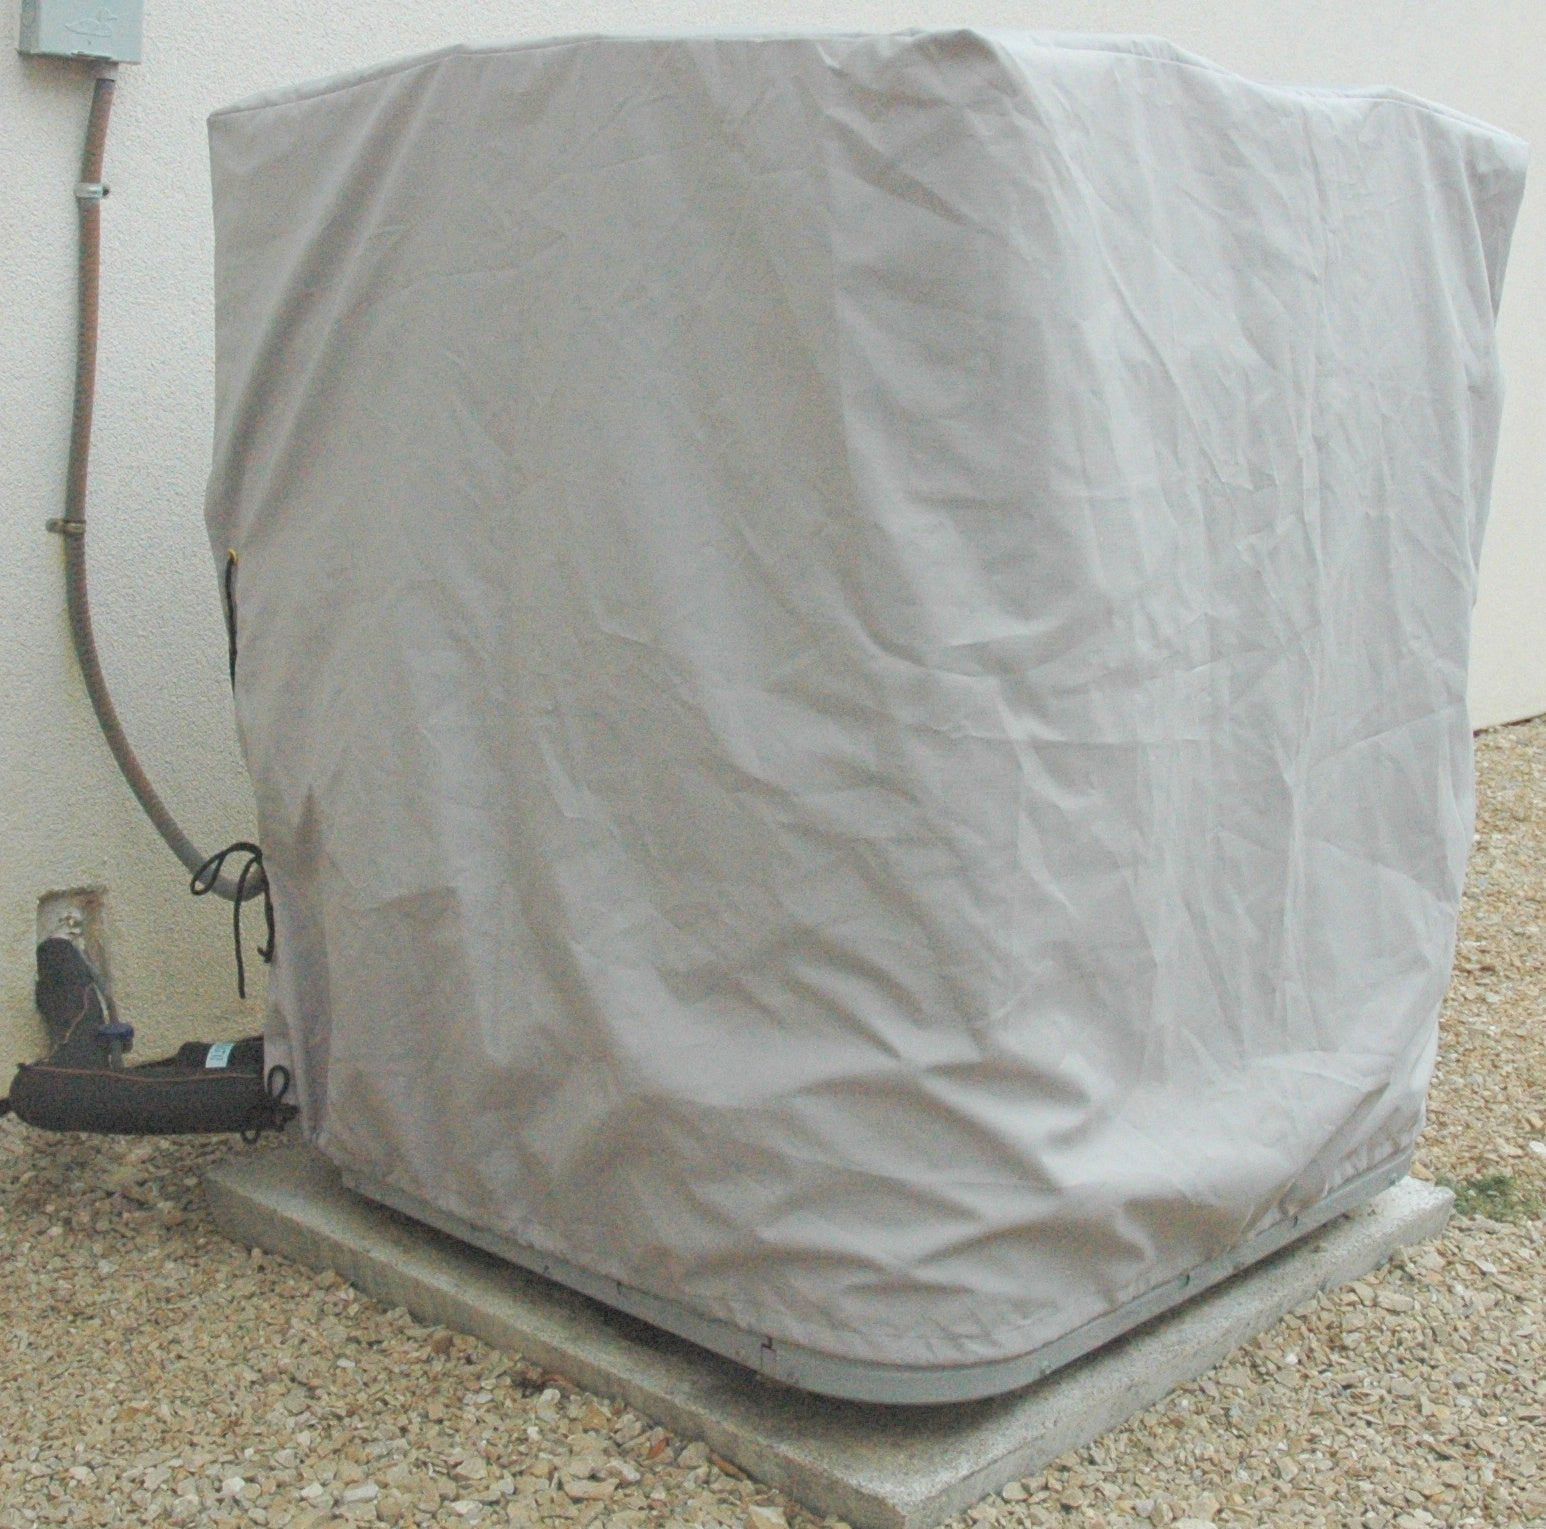 "Evaporative Cooler Cover 28""x28""x34"" Down Draft Pack of 1"